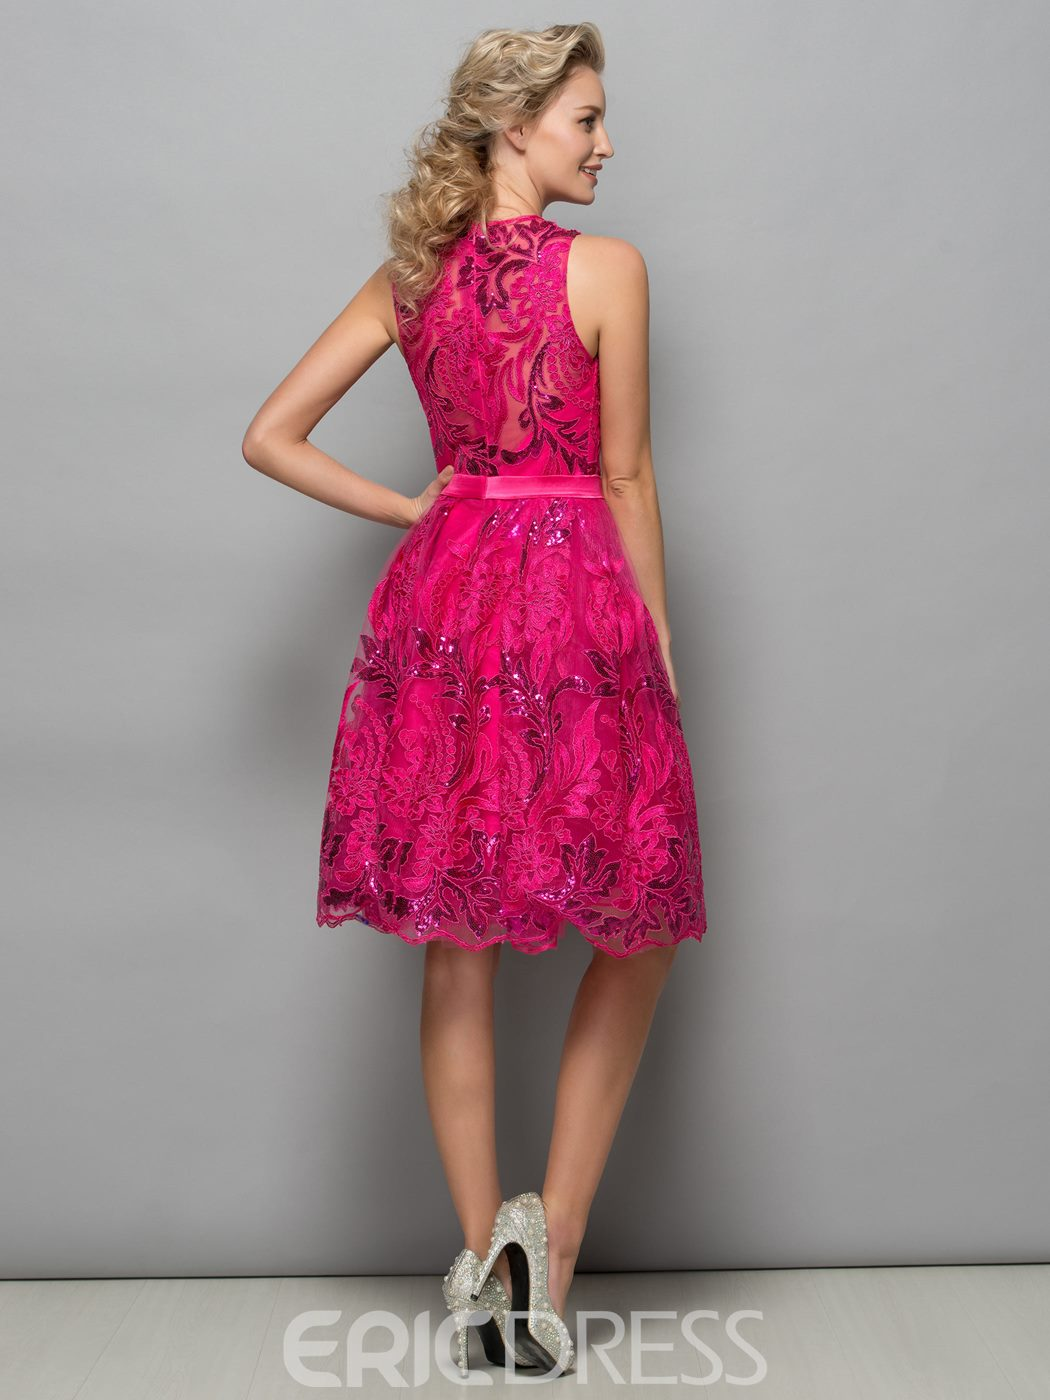 Ericdress A-Line Appliques Sequins Short Cocktail Dress